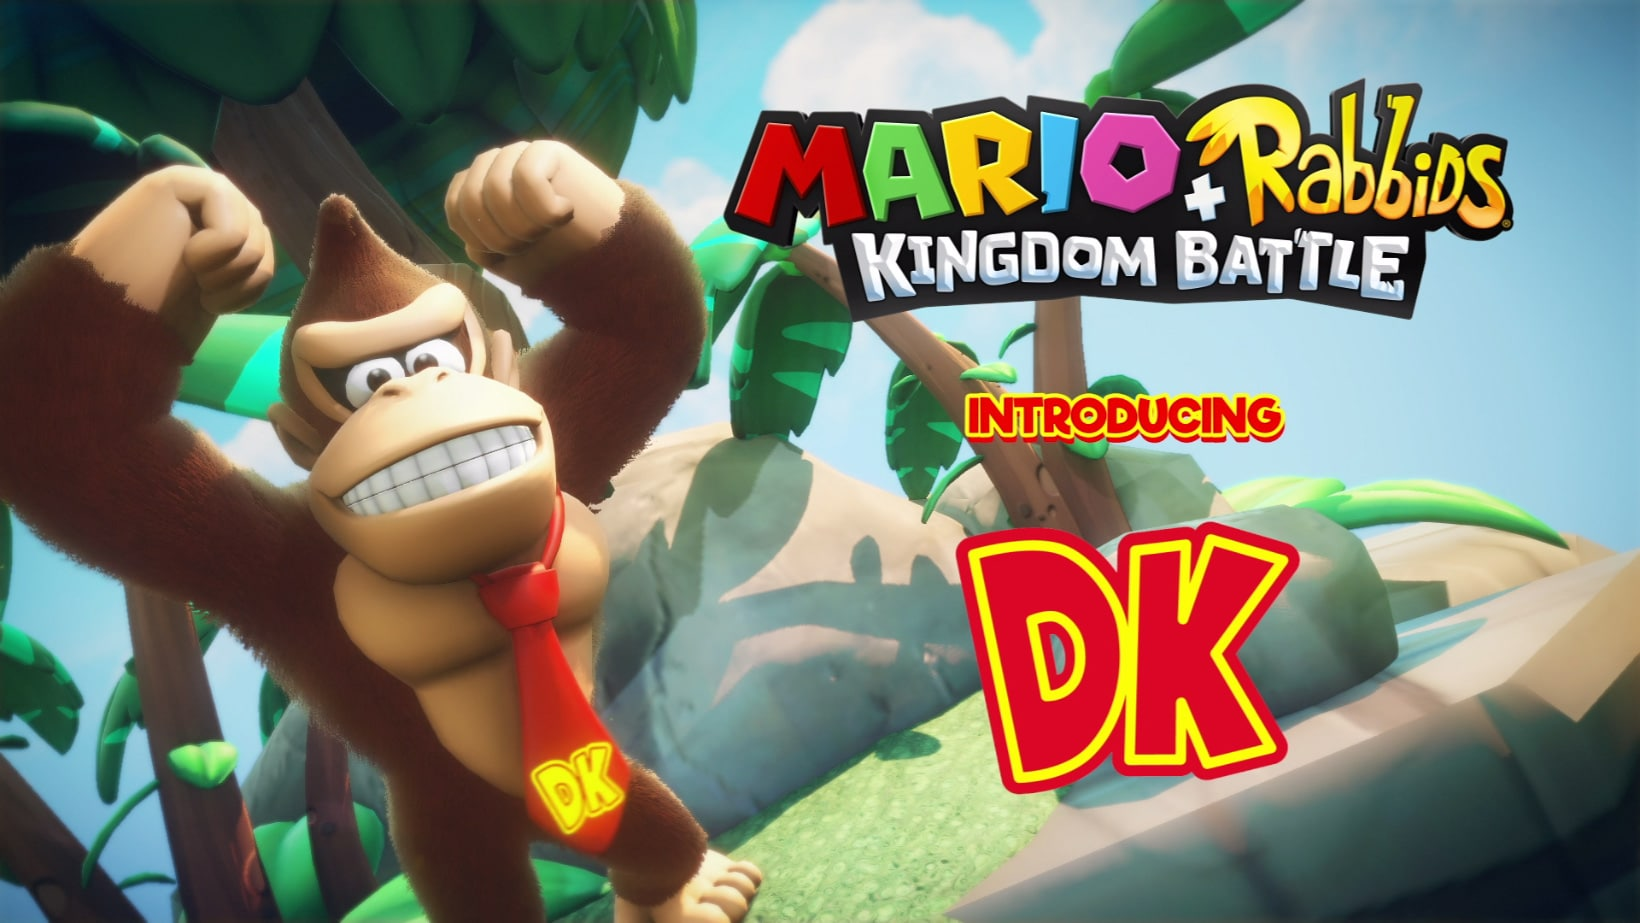 Image result for MARIO + RABBIDS KINGDOM BATTLE DONKEY KONG DLC